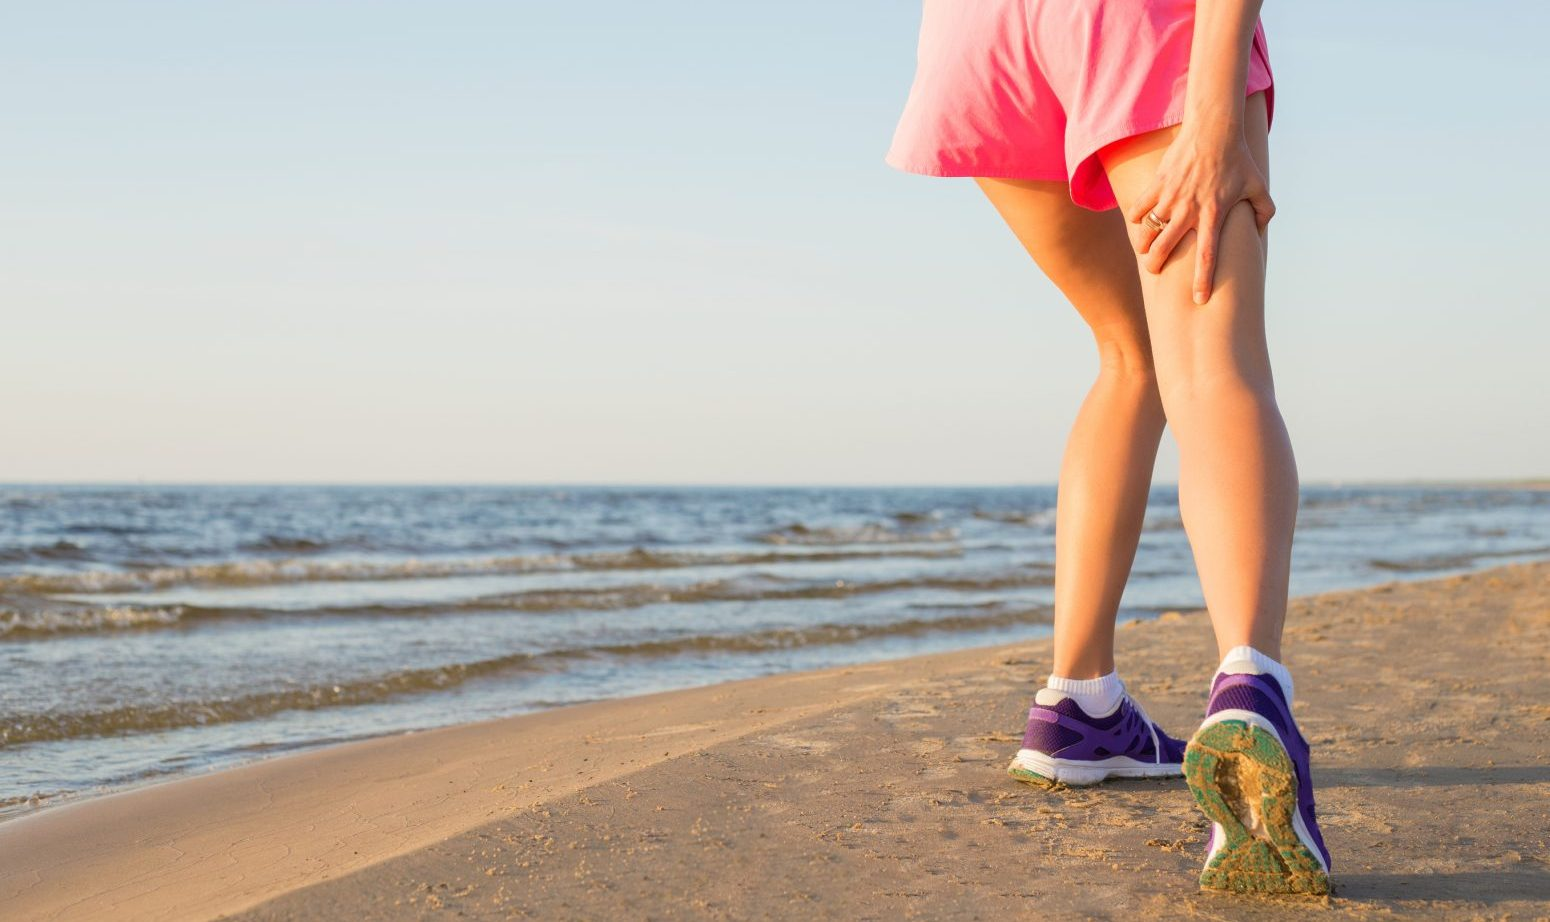 Female runner with pulled hamstring